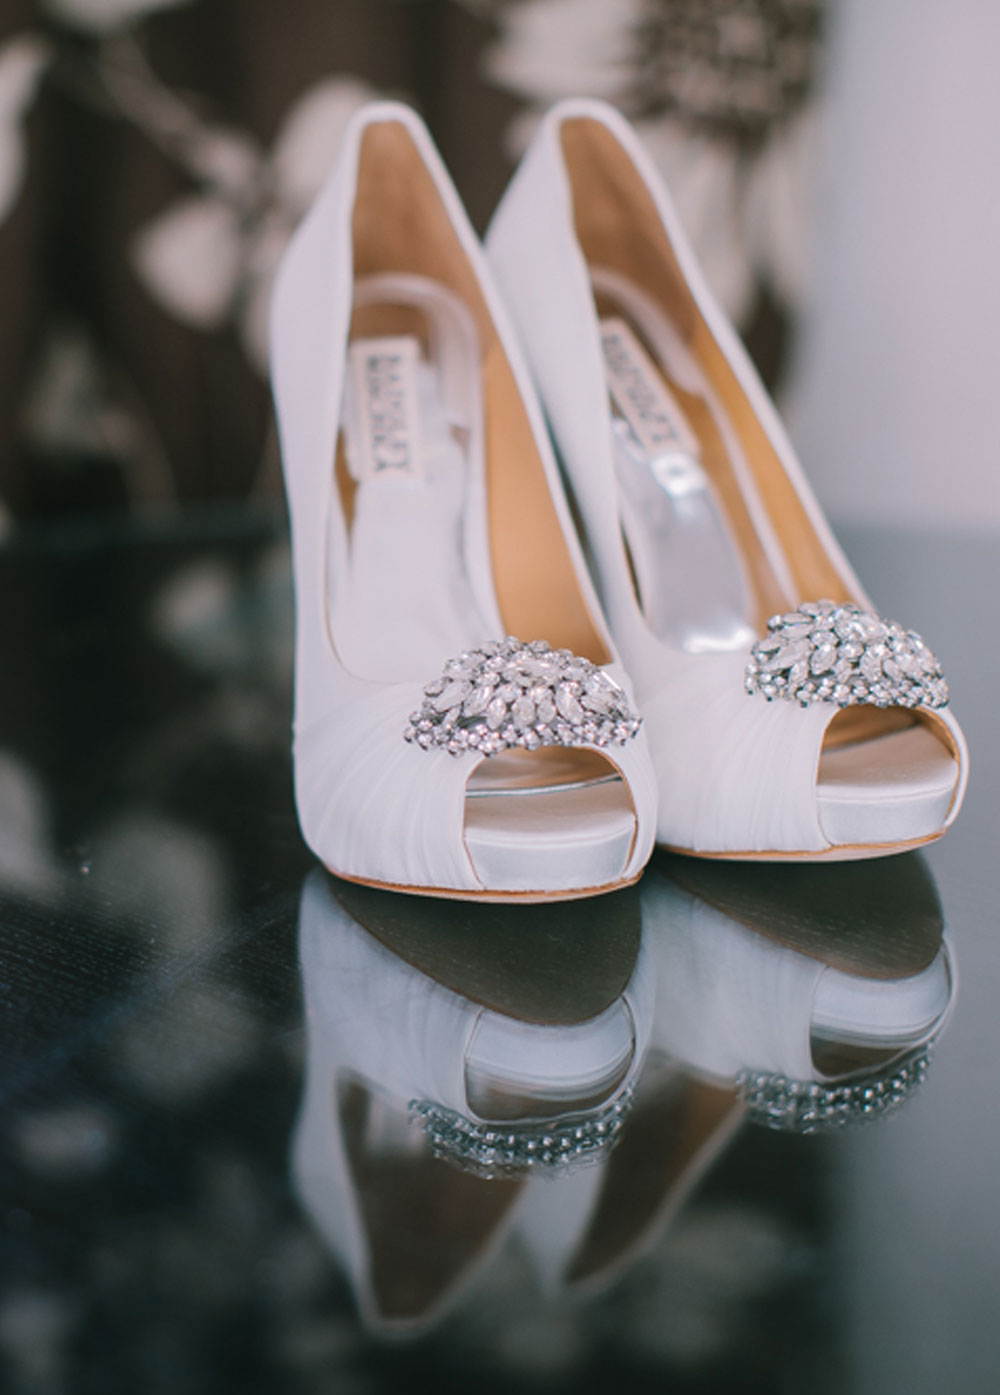 Embellished shoes from Badgely Mishka (photo Chris Barber Photography)